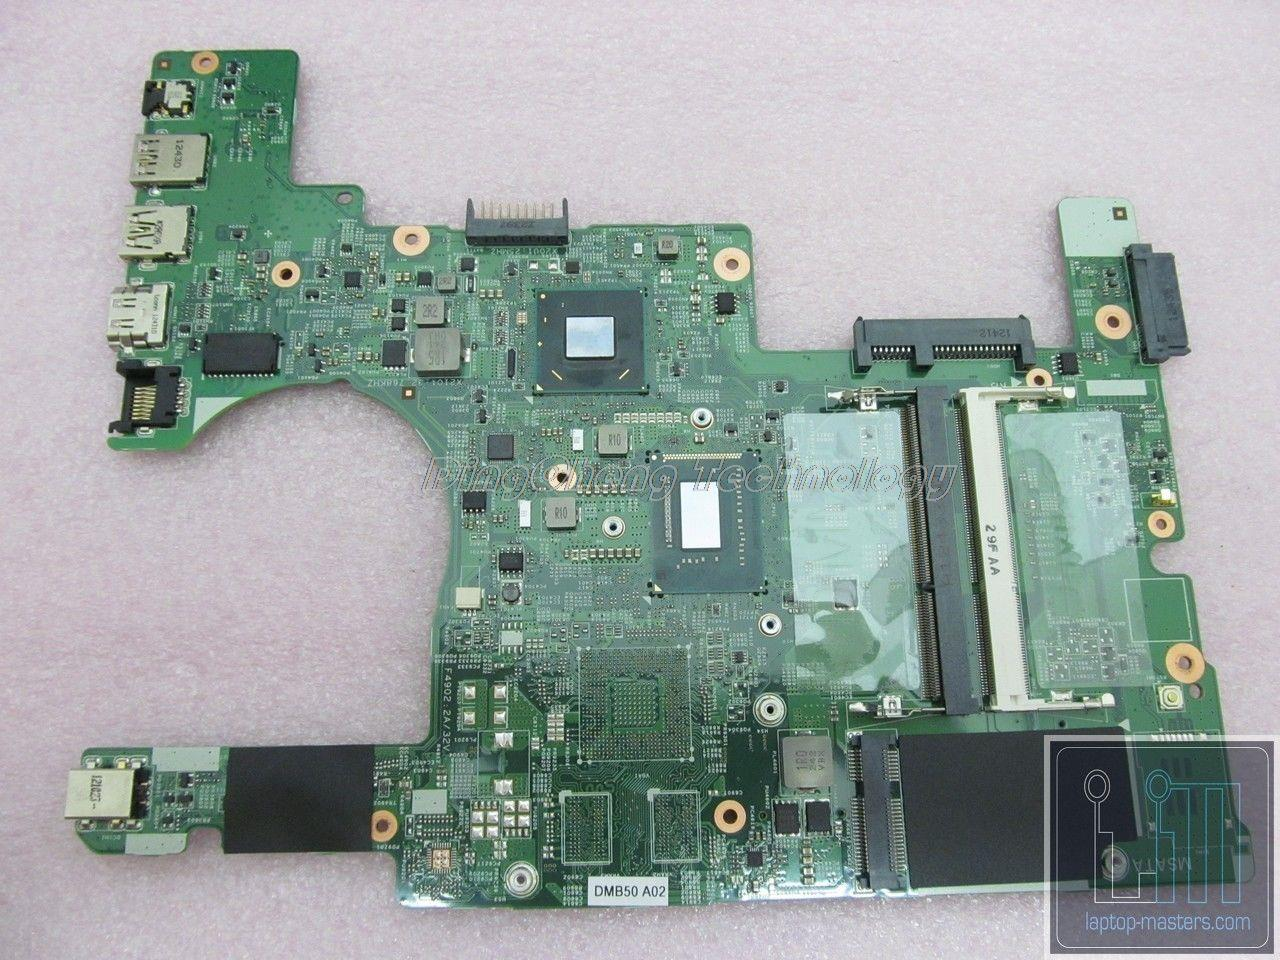 HOLYTIME laptop Motherboard/mainboard for dell 15z 5523 CN-0XWPTW XWPTW for intel I3-3217U cpu with integrated graphics cardHOLYTIME laptop Motherboard/mainboard for dell 15z 5523 CN-0XWPTW XWPTW for intel I3-3217U cpu with integrated graphics card